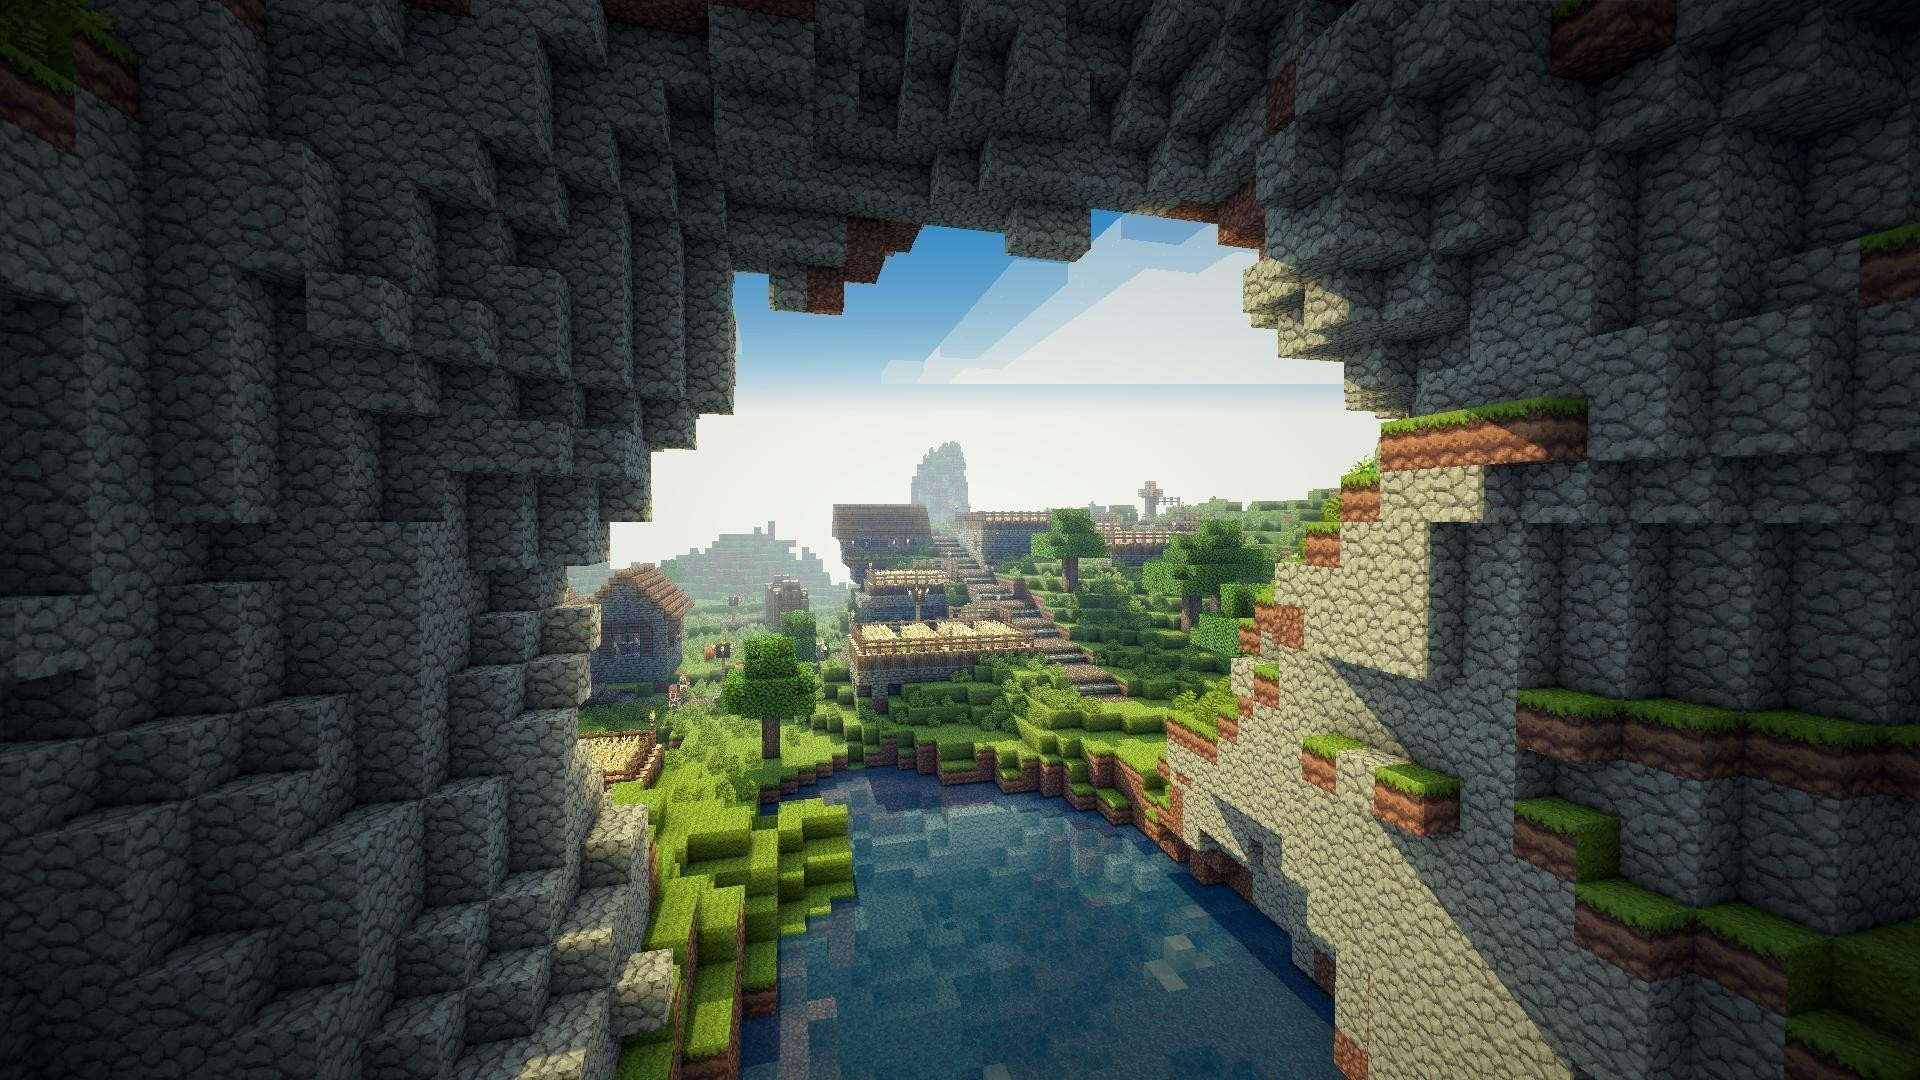 Res: 1920x1080, Title : minecraft backgrounds hd – wallpaper cave. Dimension : 1920 x 1080.  File Type : JPG/JPEG